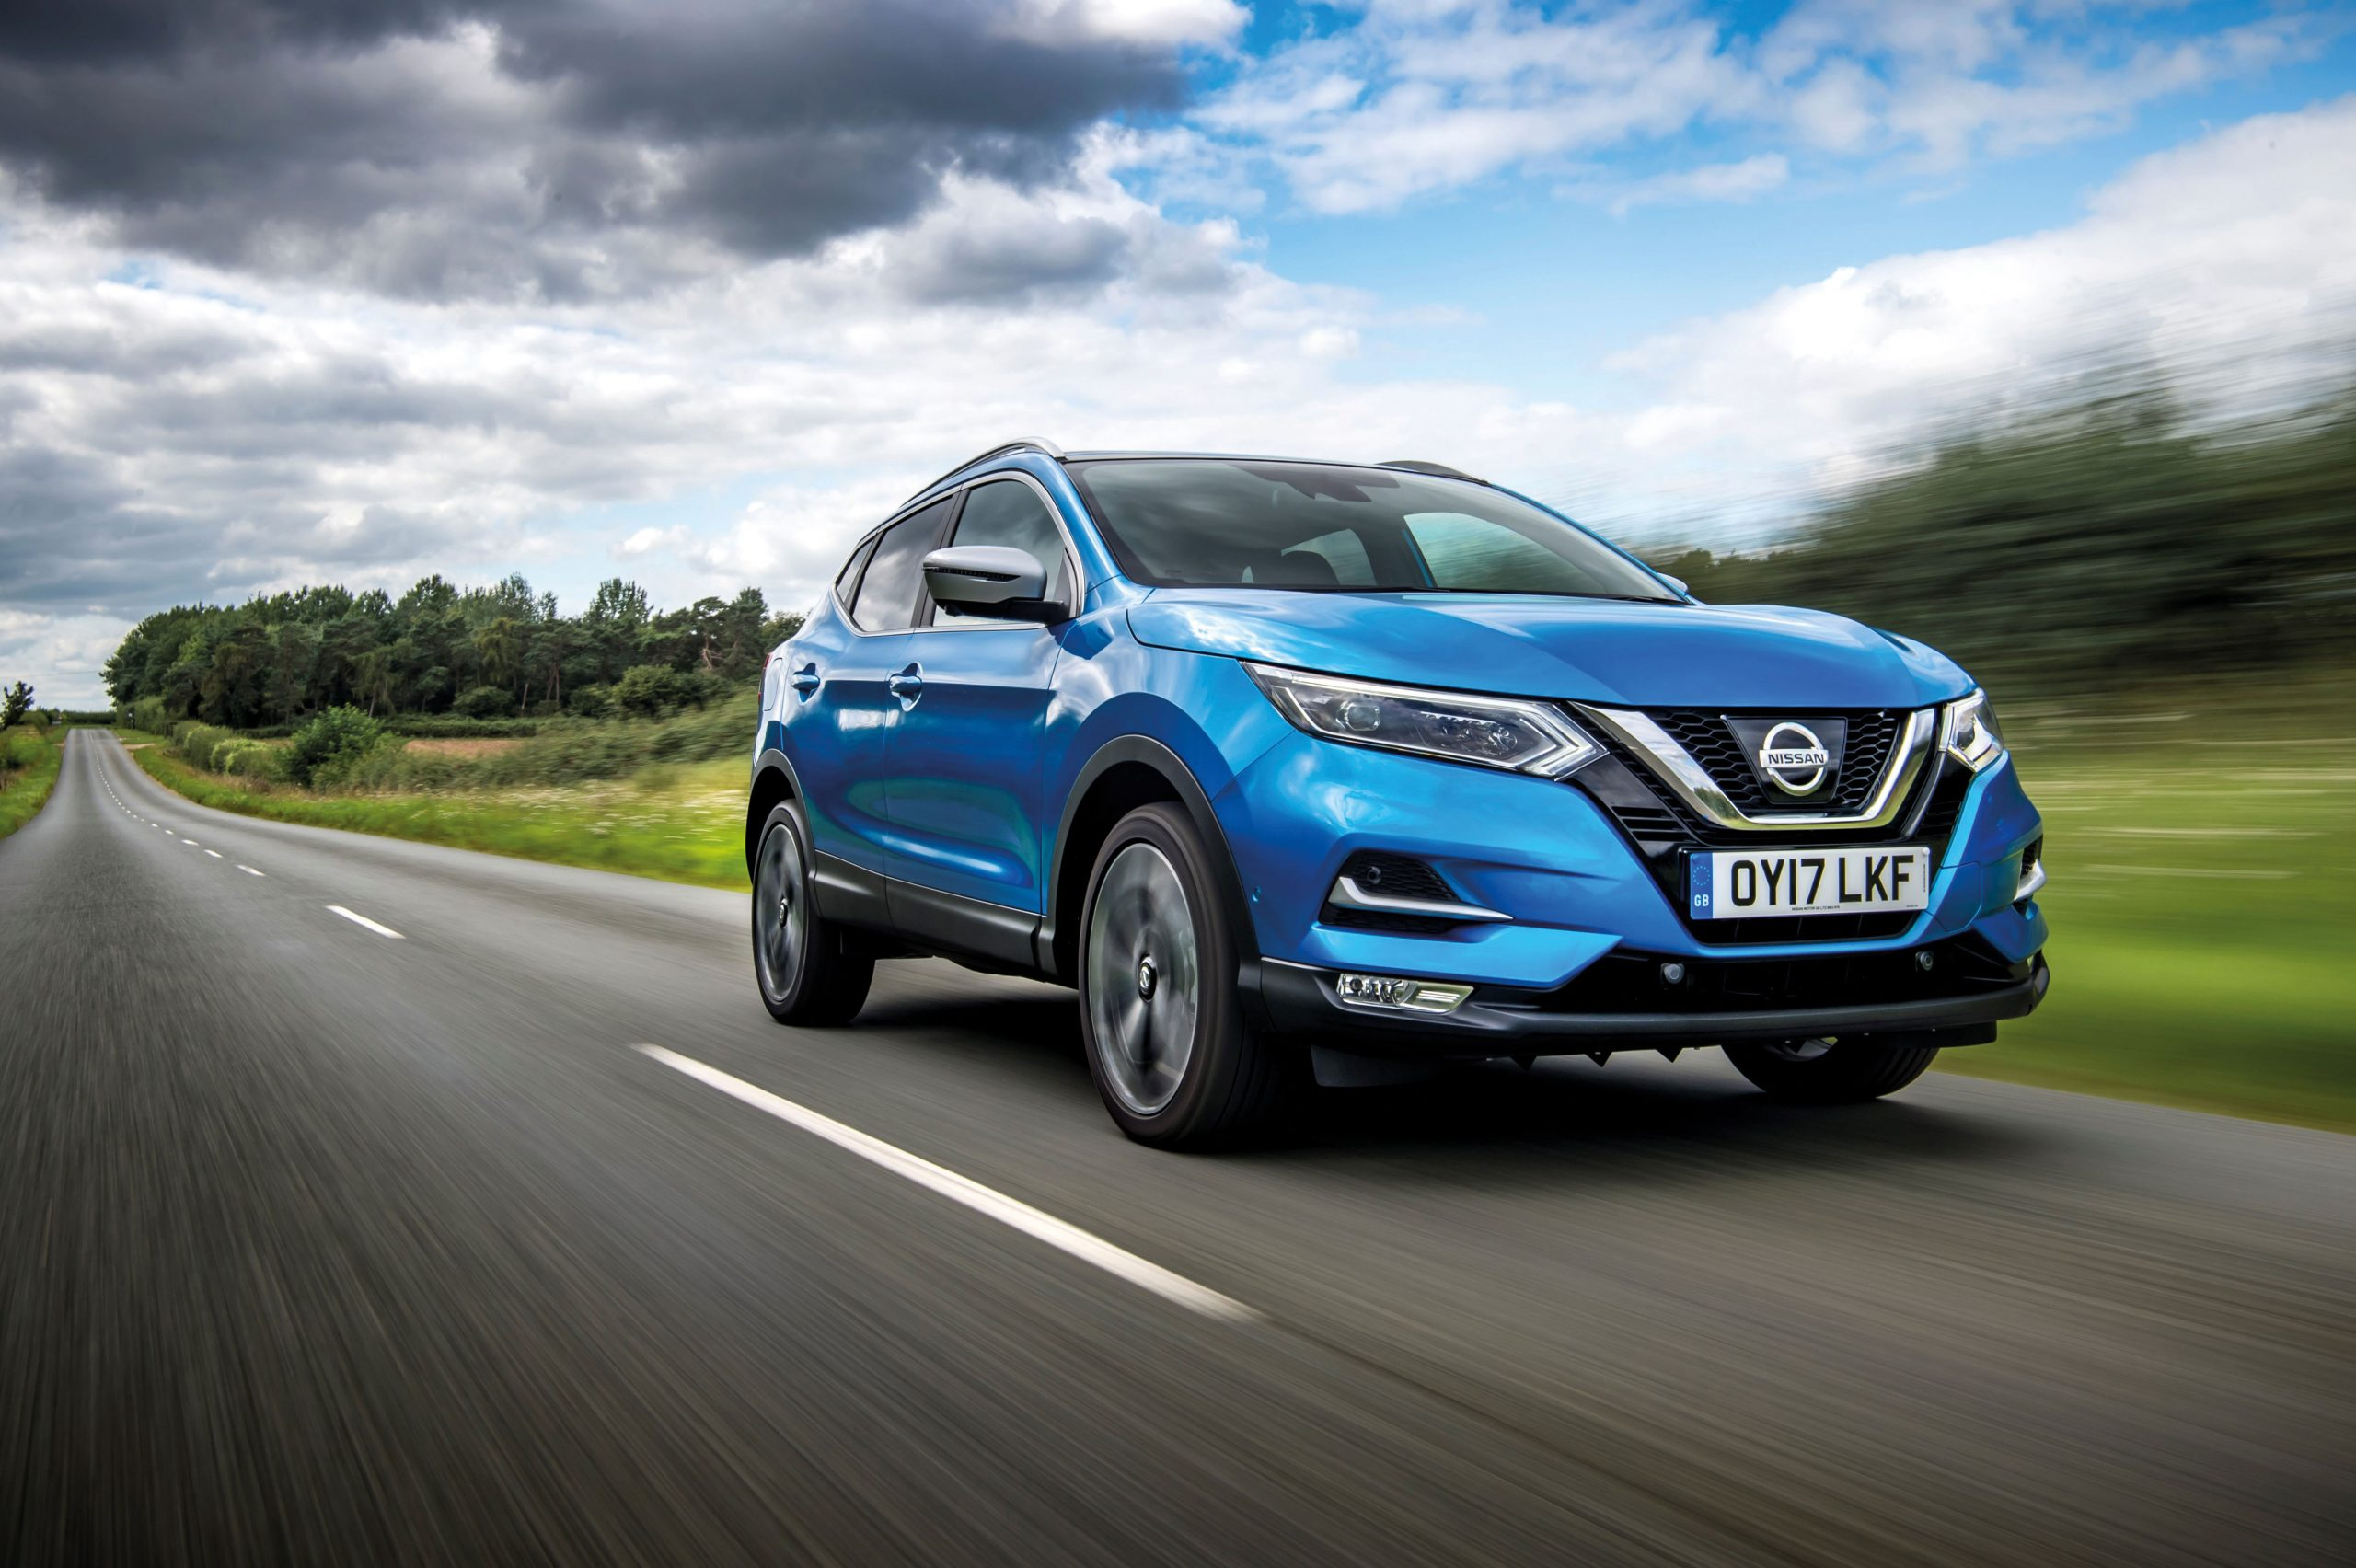 Nissan Qashqai 1, in black driving along a country road